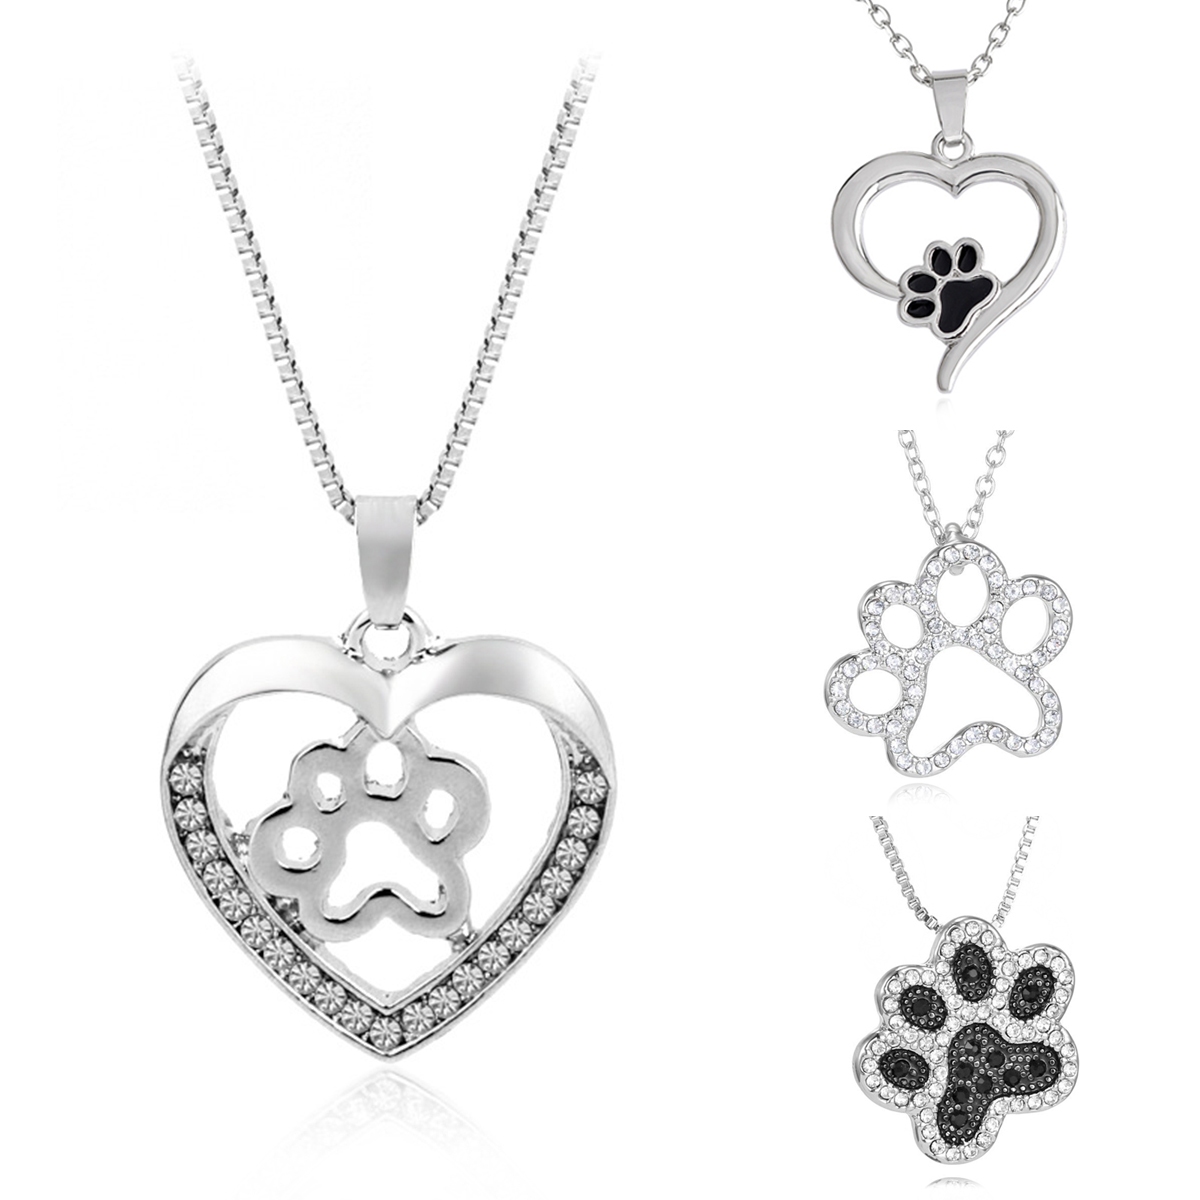 Shellhard Long Chain Pet Necklace Trendy Rhinestone Crystal Dog Puppy Paw Footprint Pendant Necklaces For Women Charms Jewelry